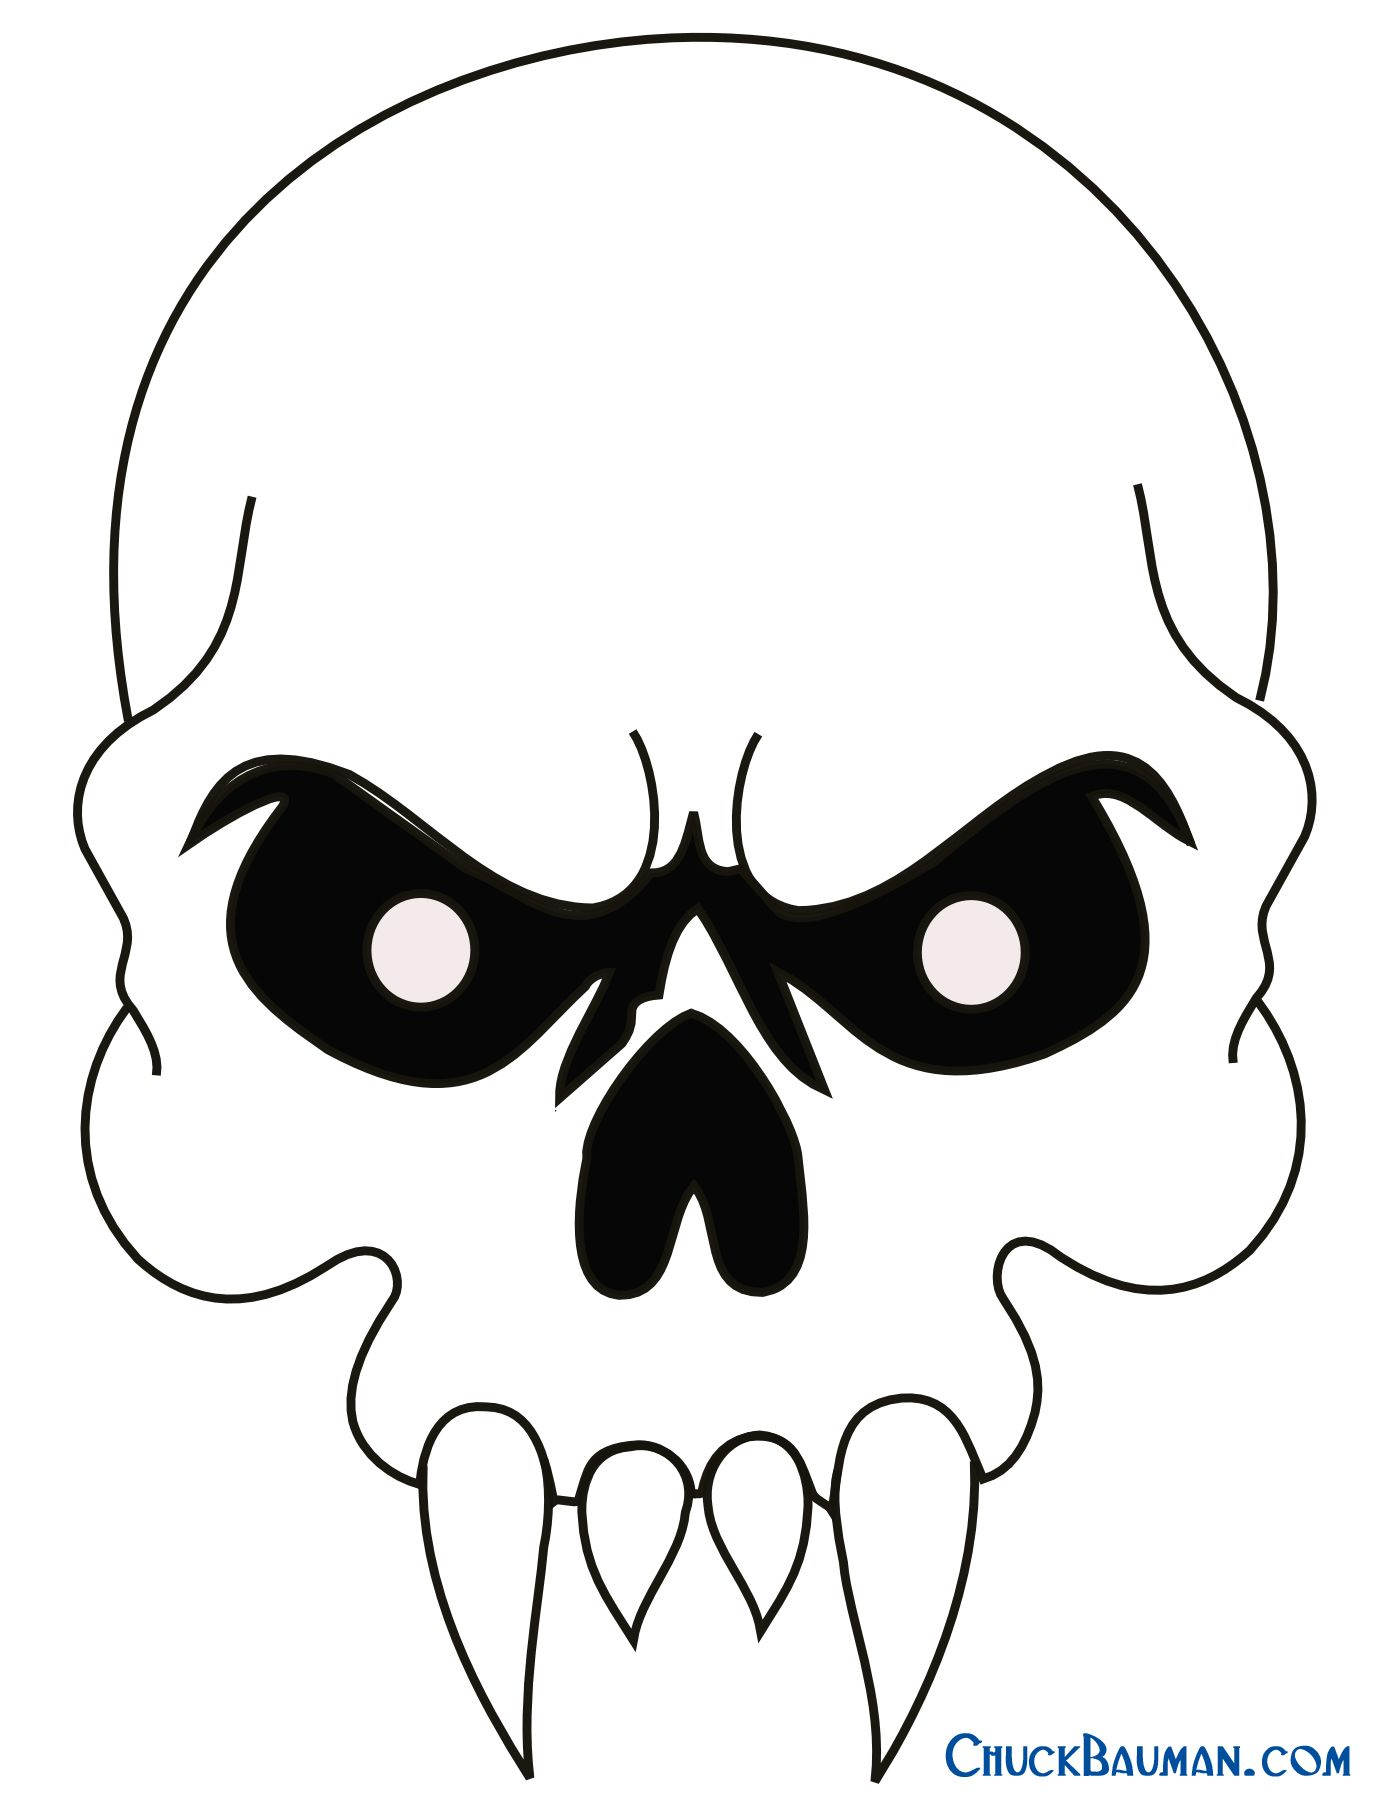 Click here for large Skull with Fangs airbrushing and